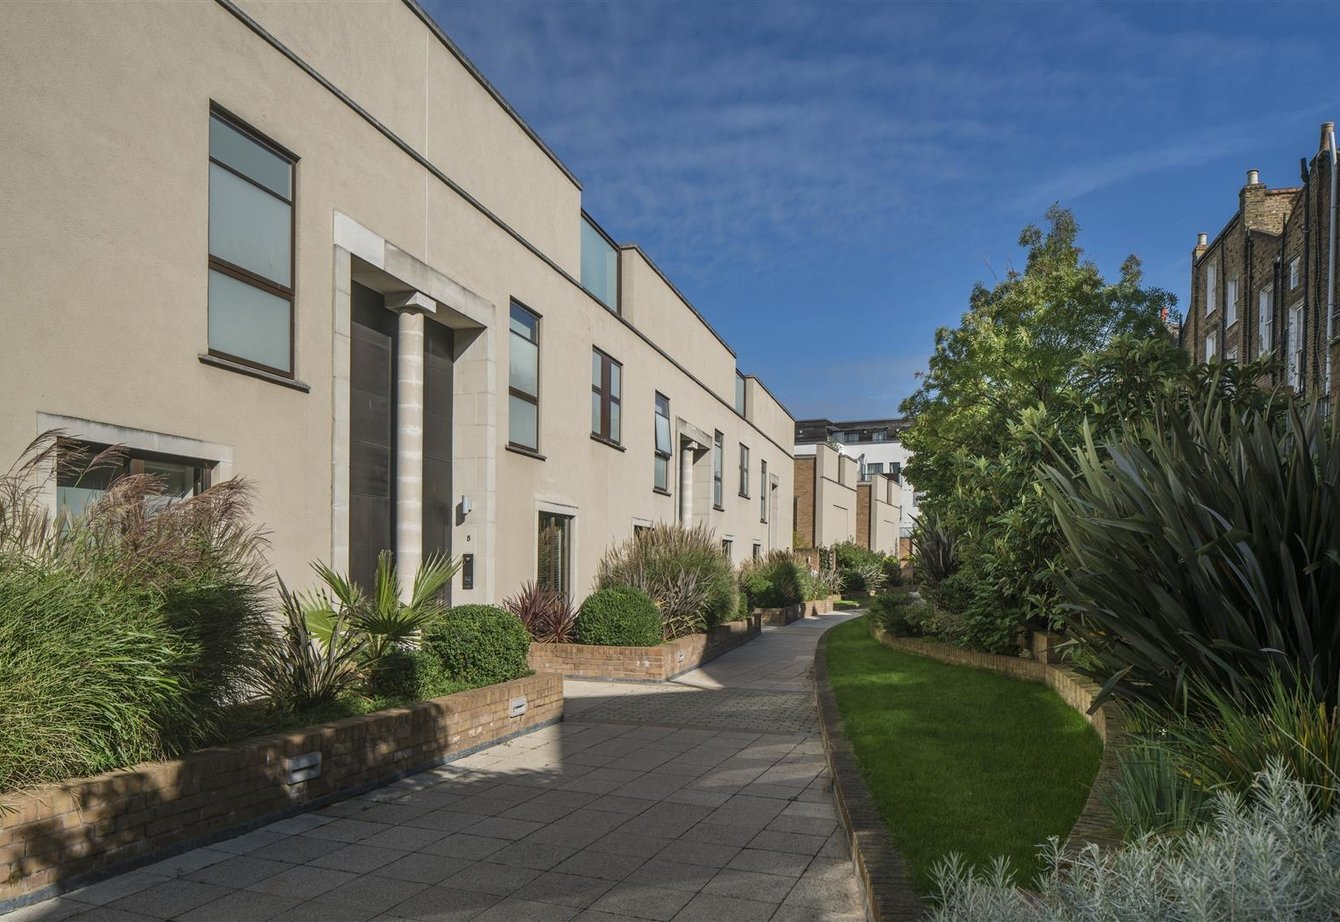 for-sale-boundary-road-london-4-view1